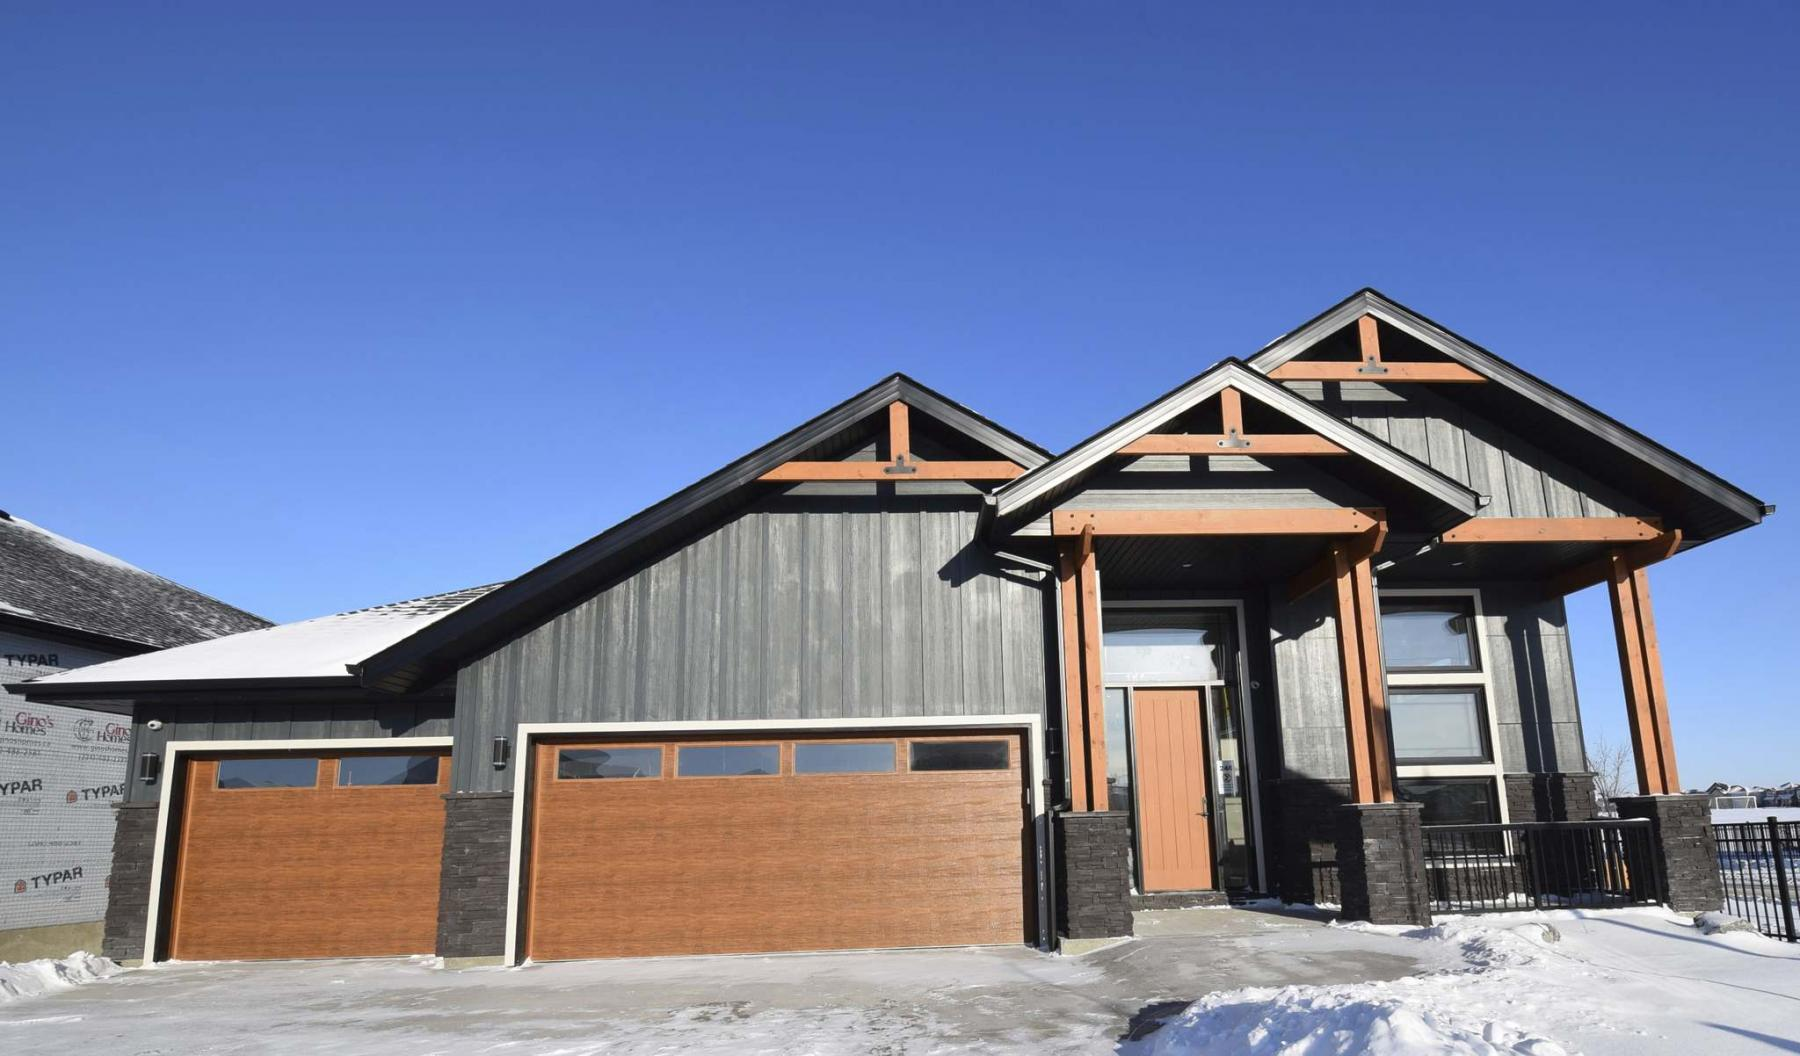 <p>Photos by Todd Lewys / Winnipeg Free Press</p><p>The 1,522 sq. ft. walk-out raised bungalow features an exterior clad with a mix of rustic and modern finishes.</p>